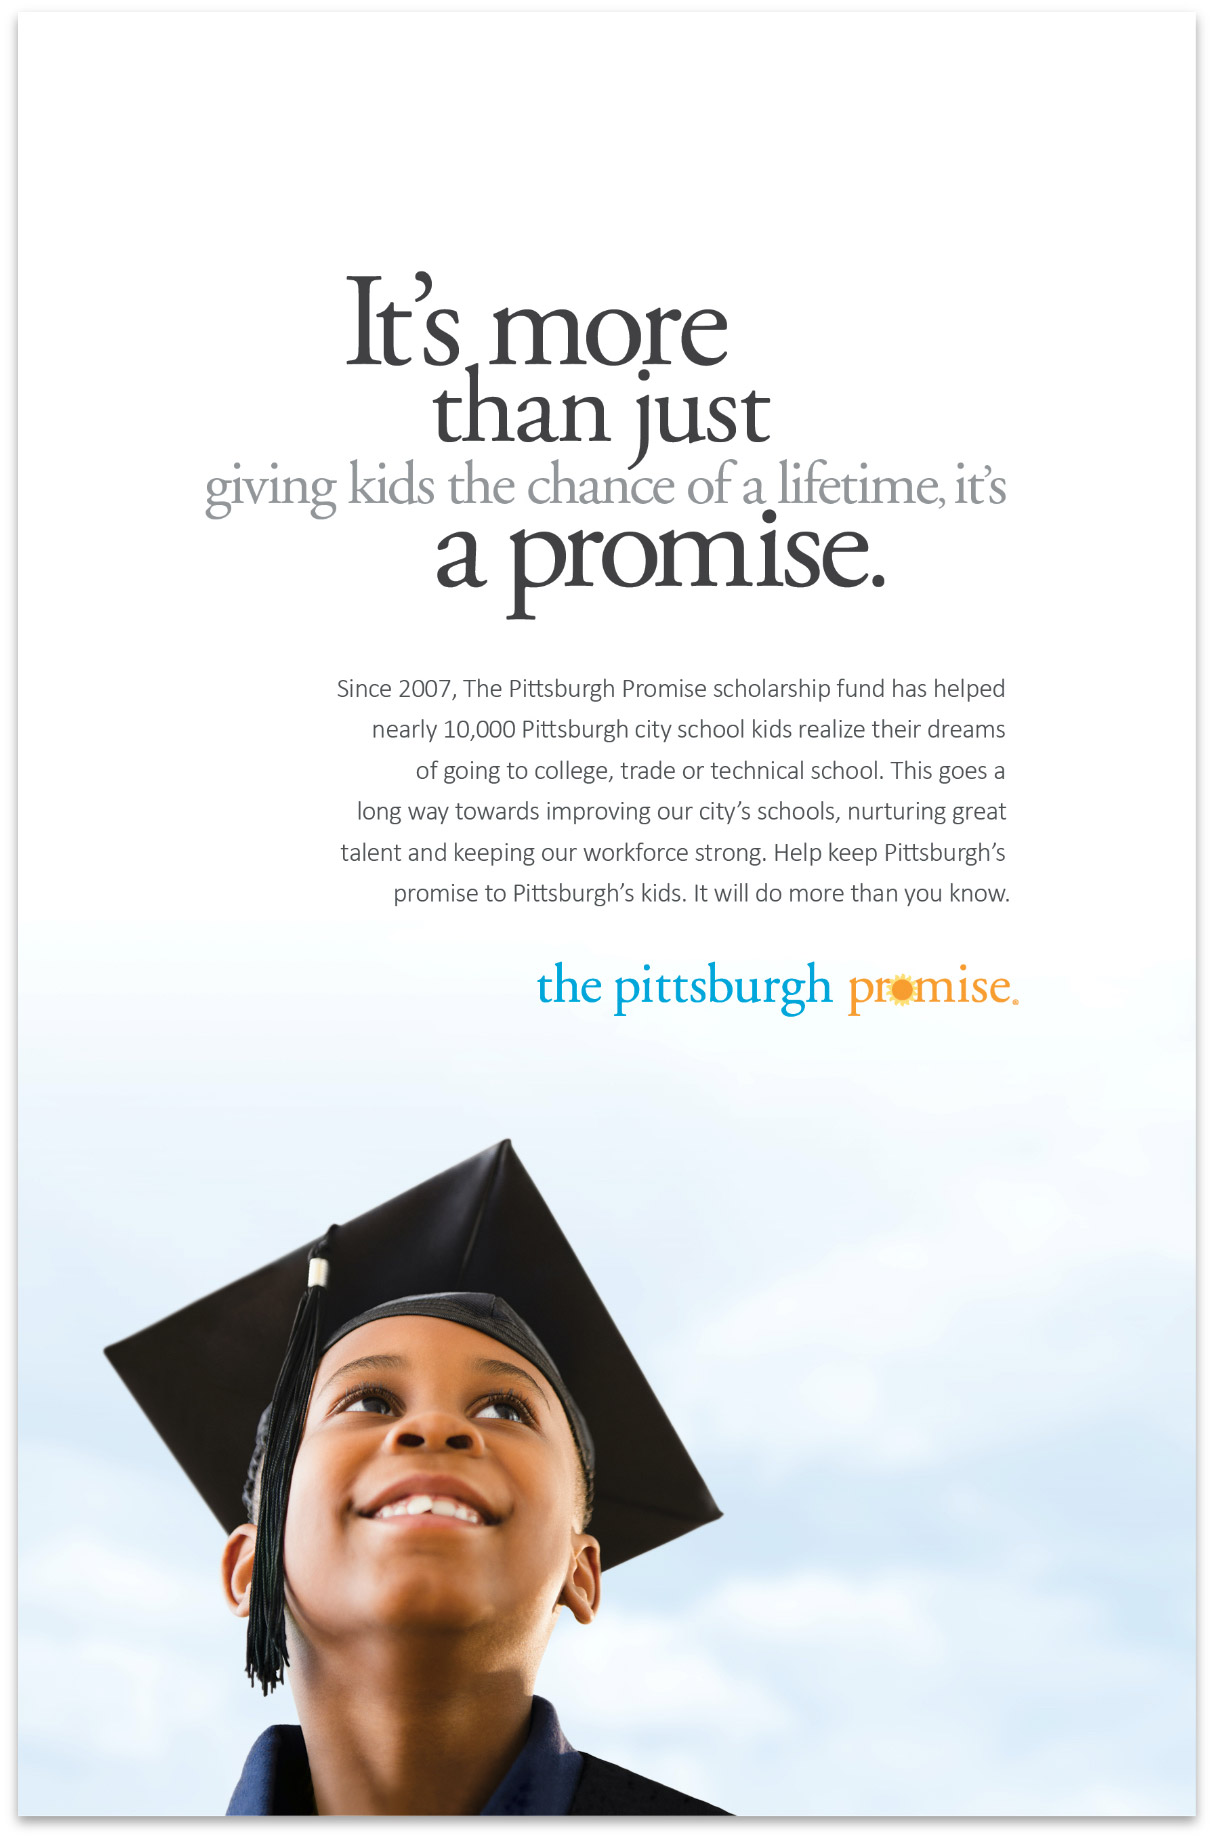 It's more than just giving kids the chance of a lifetime, it's a promise.